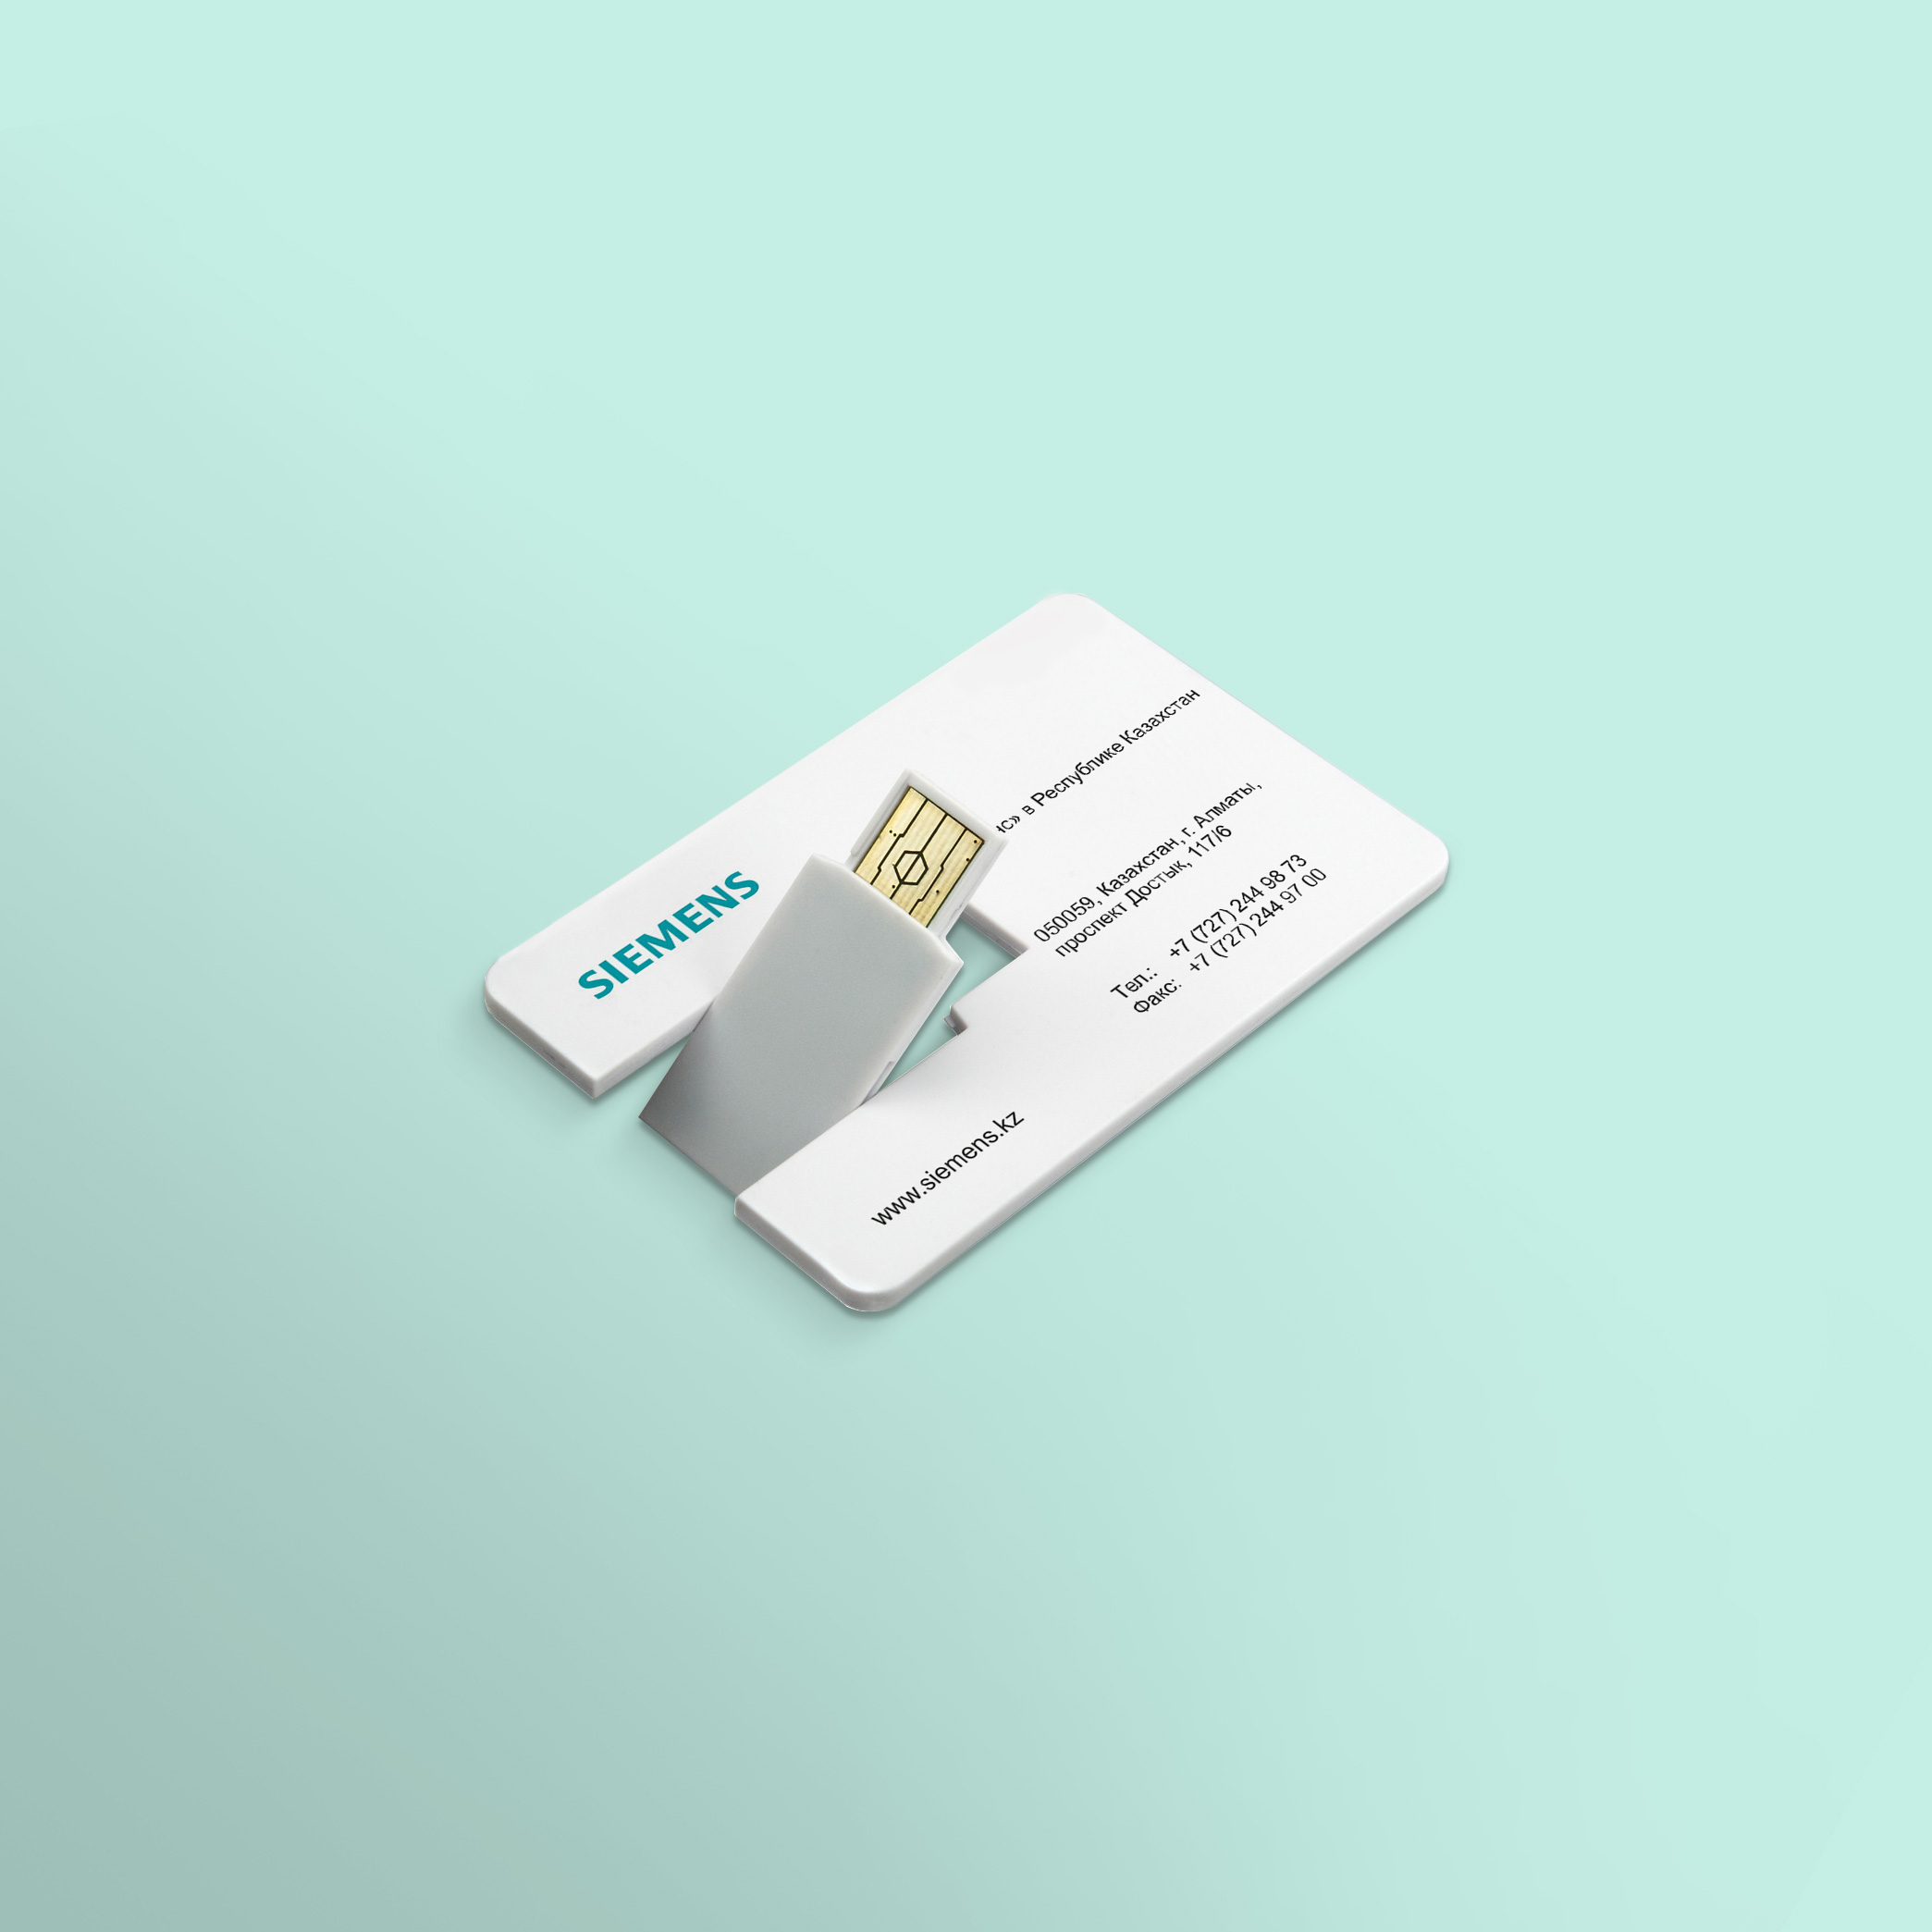 USB Flash Siemens (1)